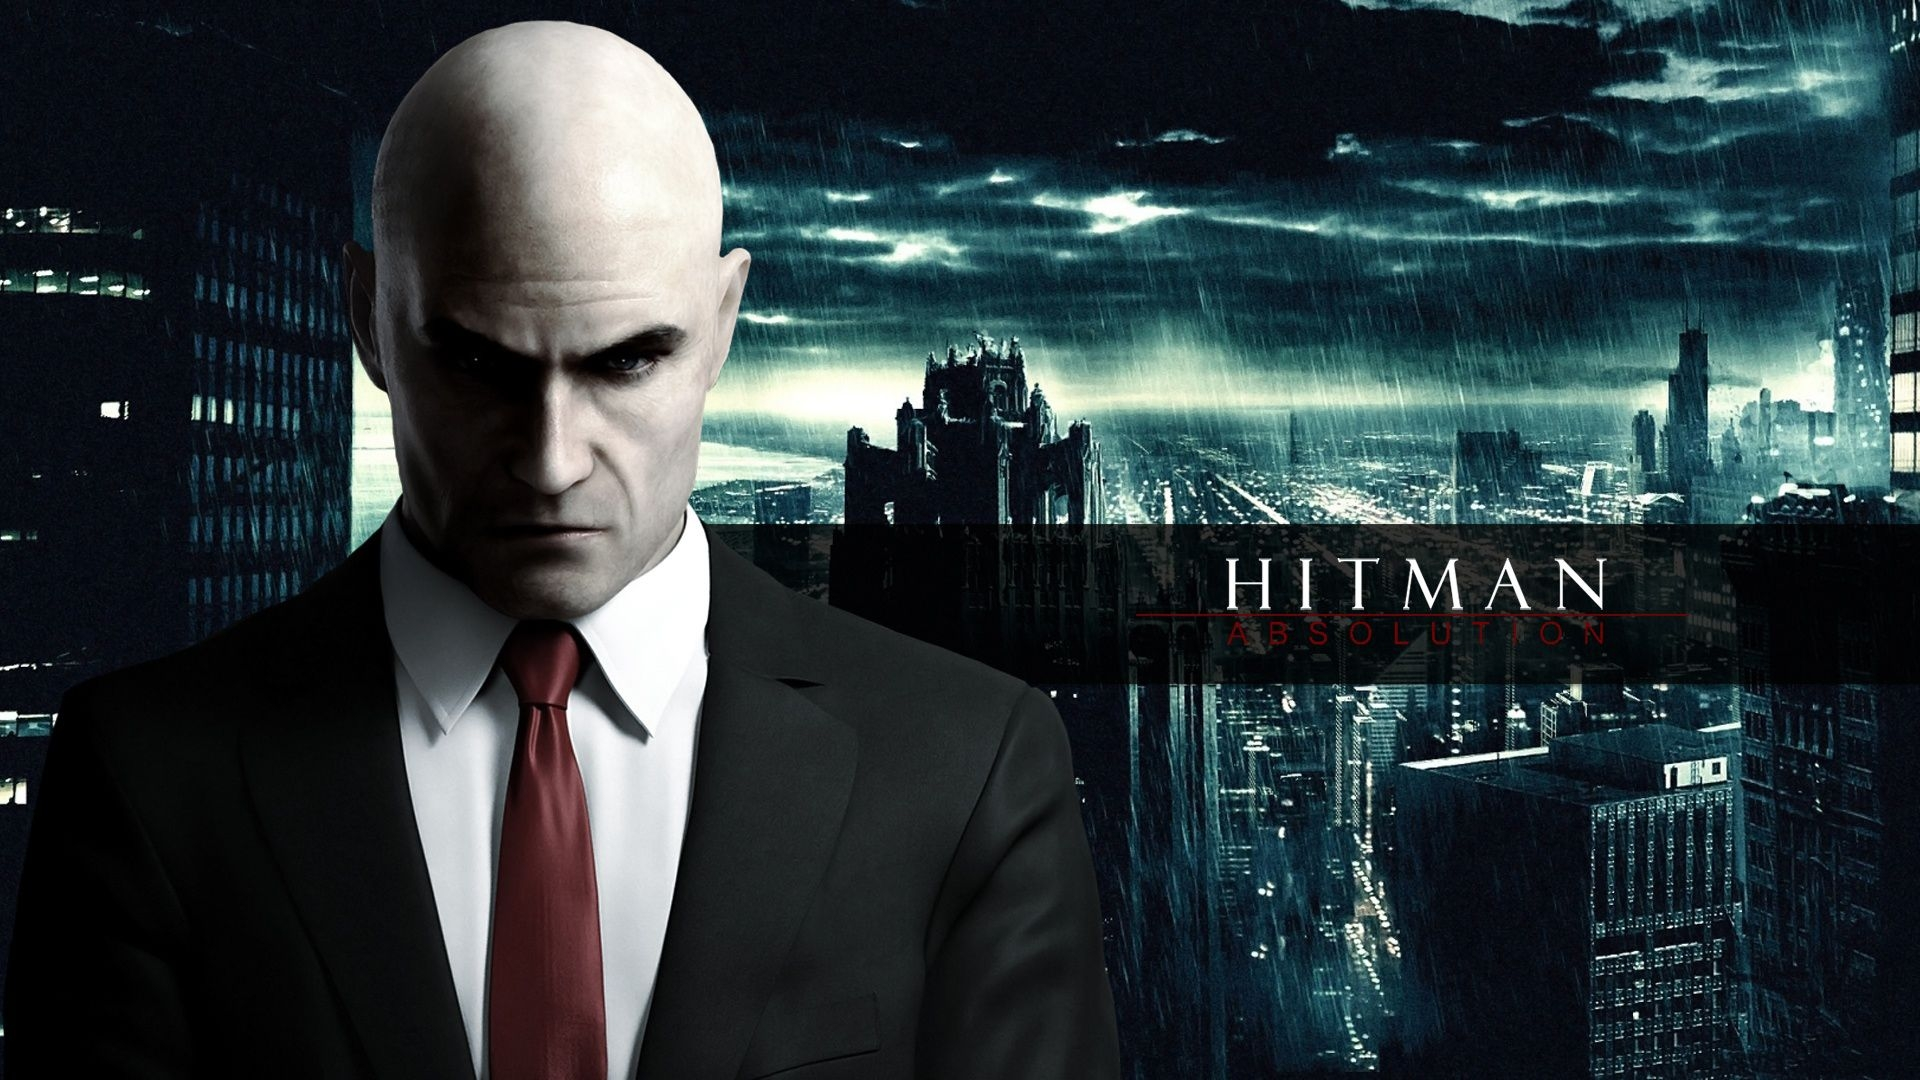 hitman aboslution free download